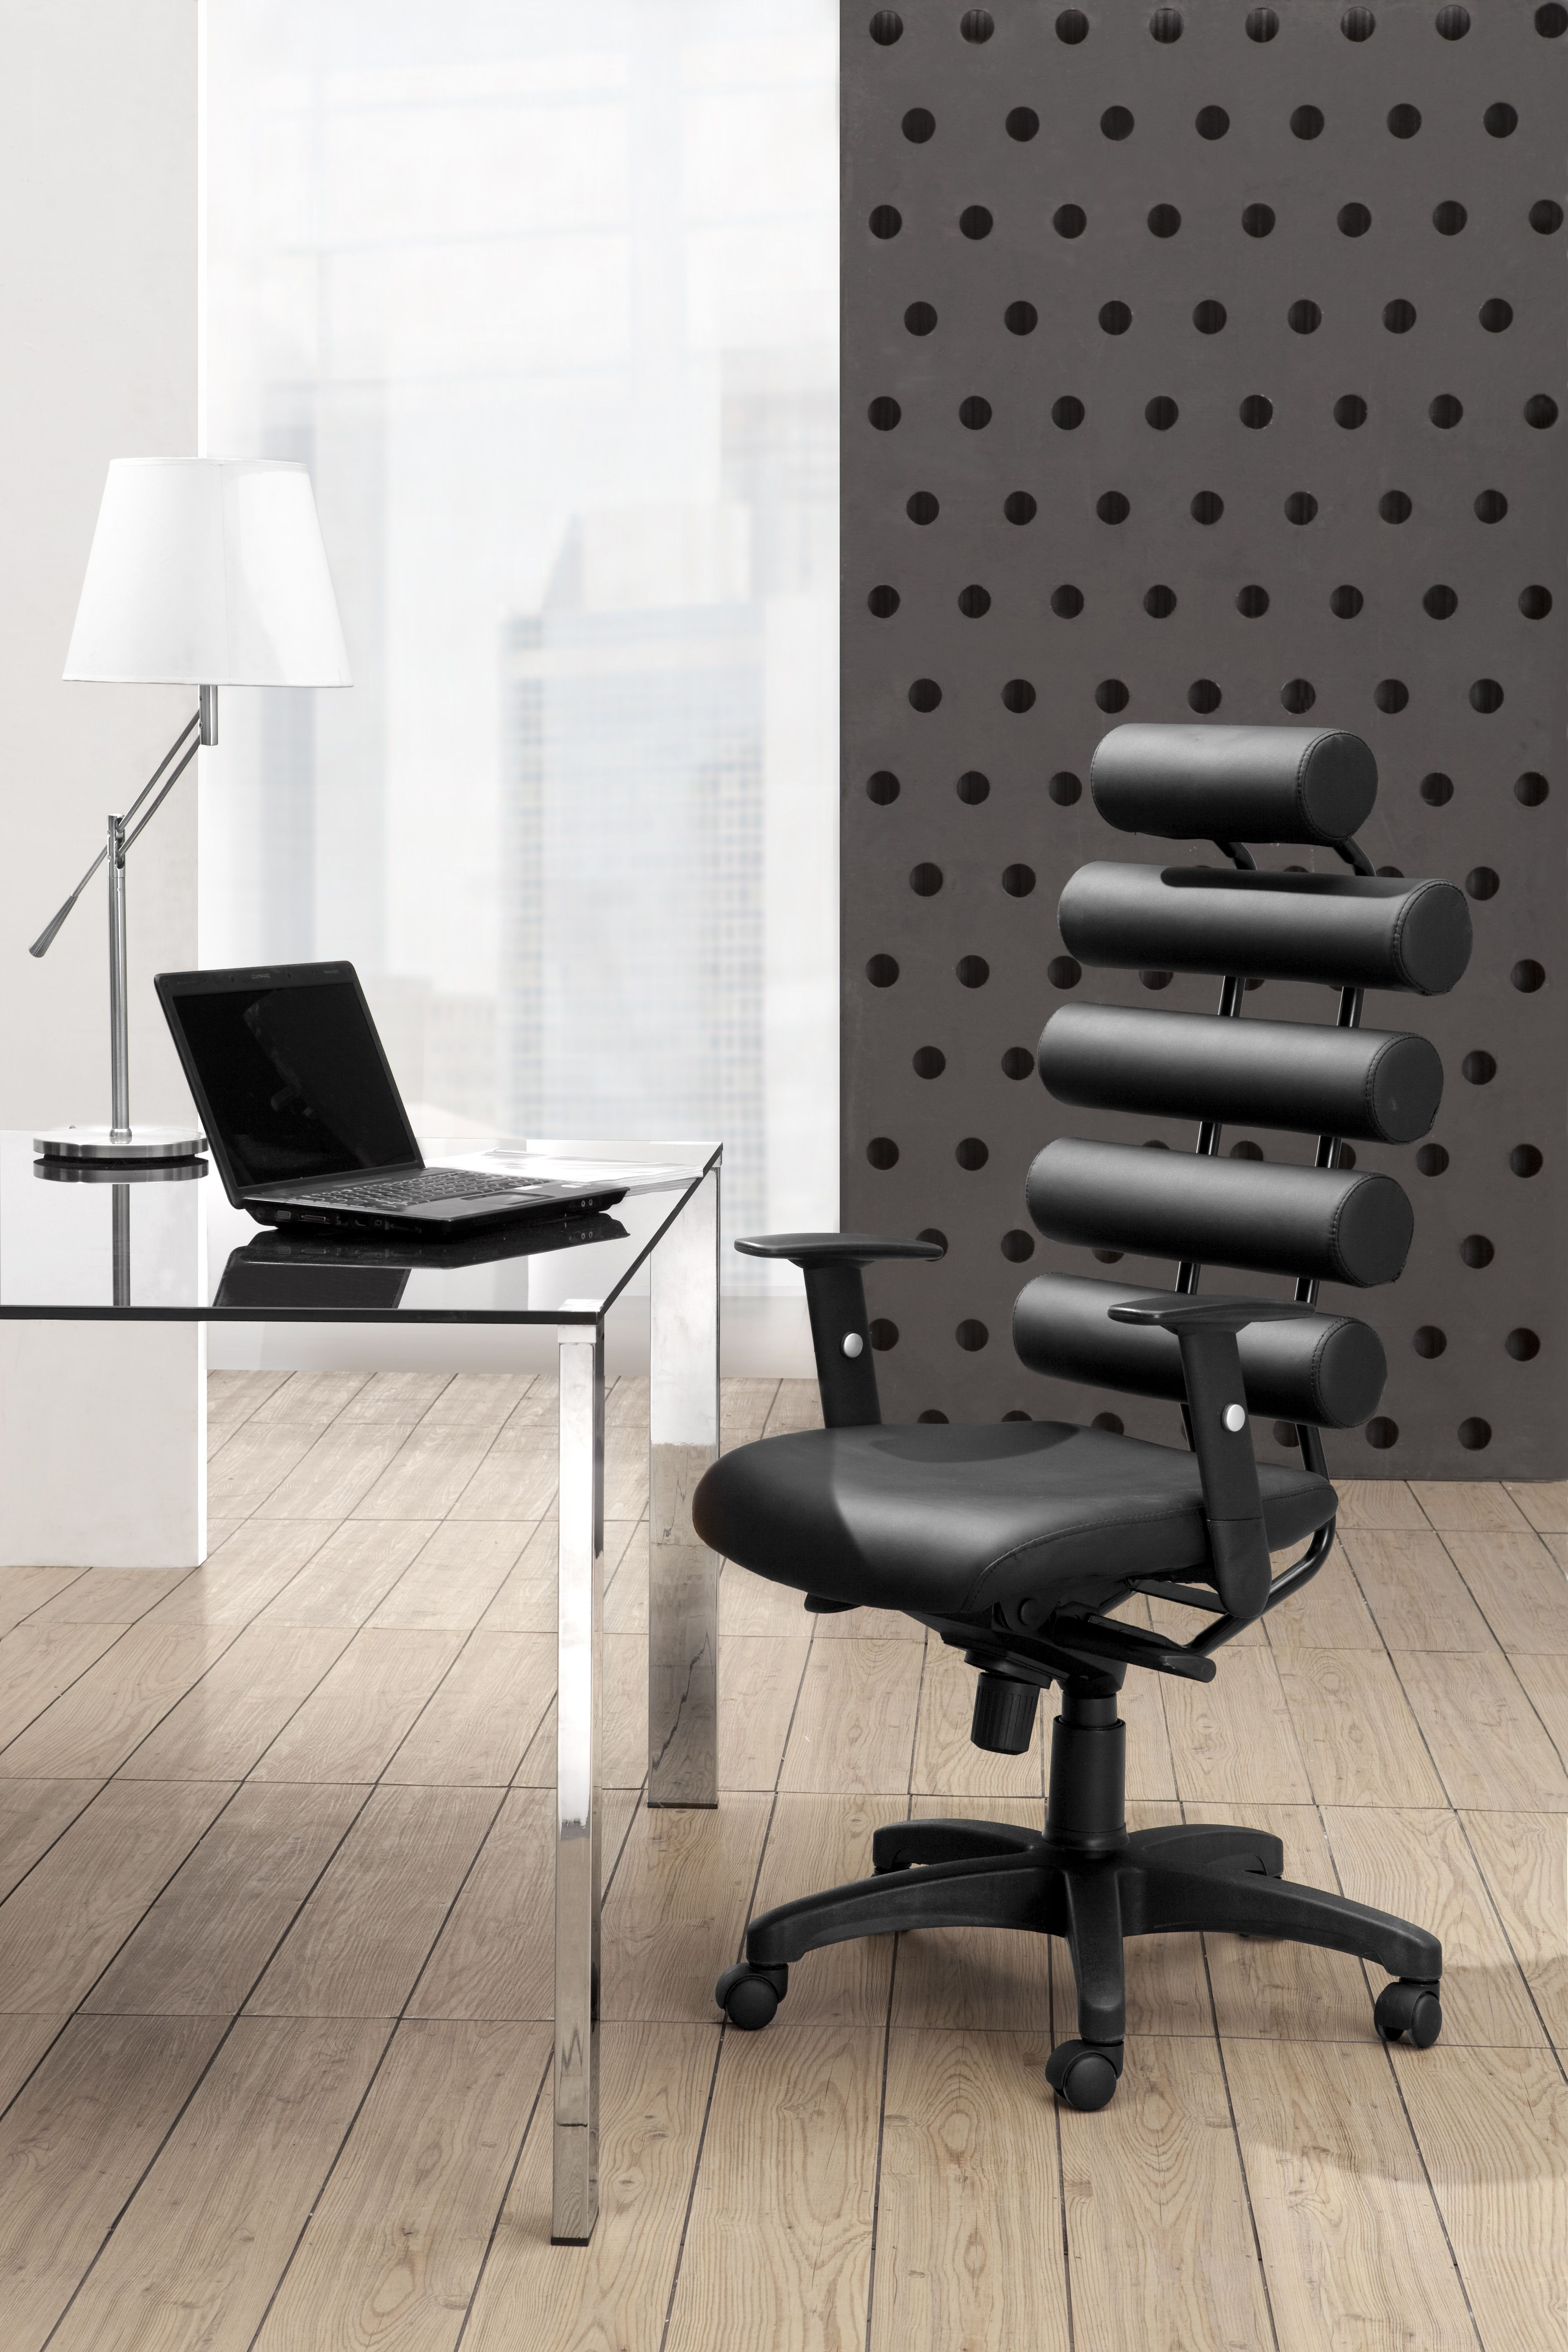 unico office chair. Unico Office Chair Black - Zuo 205050 This High Back Provides Ultimate Lumbar Support The Has Firm Leatherette I